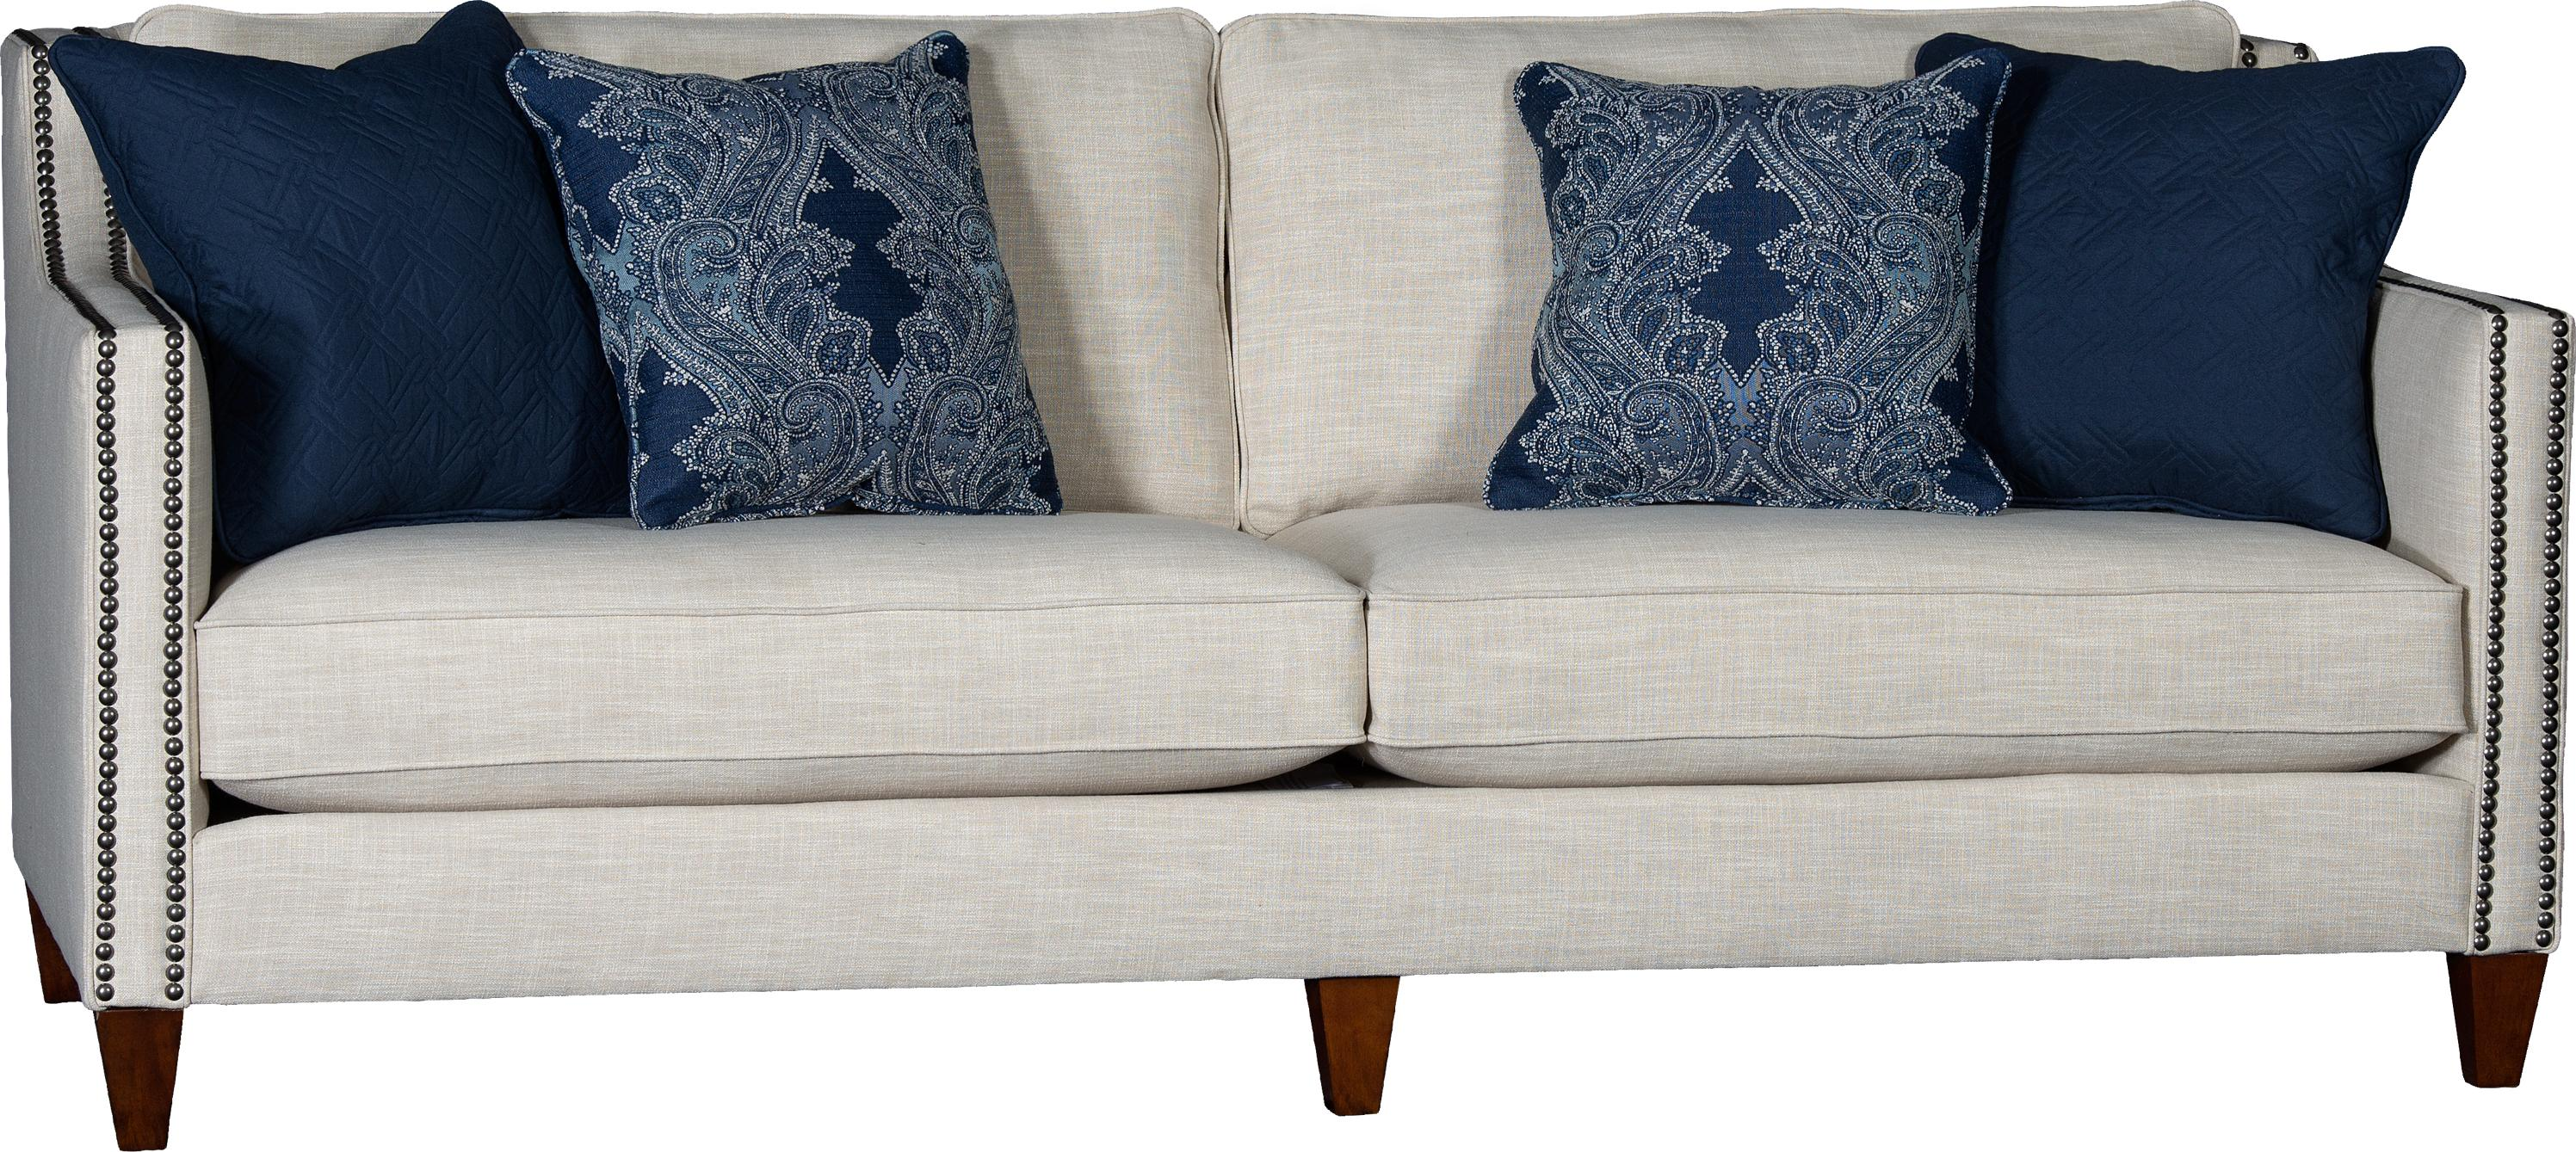 6170 Sofa by Mayo at Wilcox Furniture